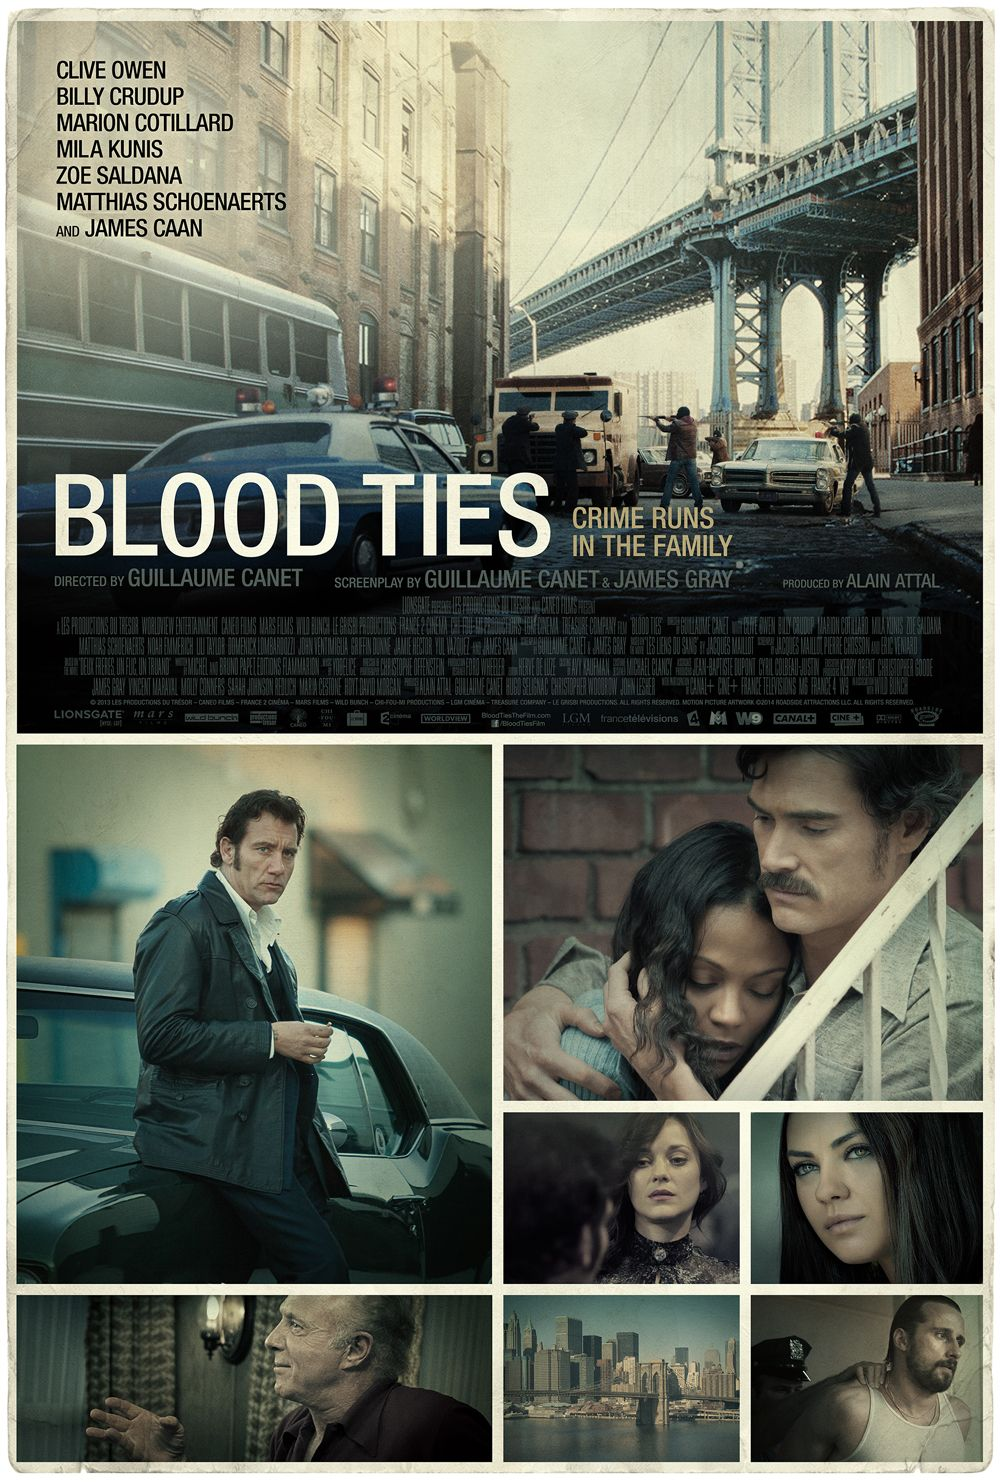 blood ties review clive owen and billy crudup